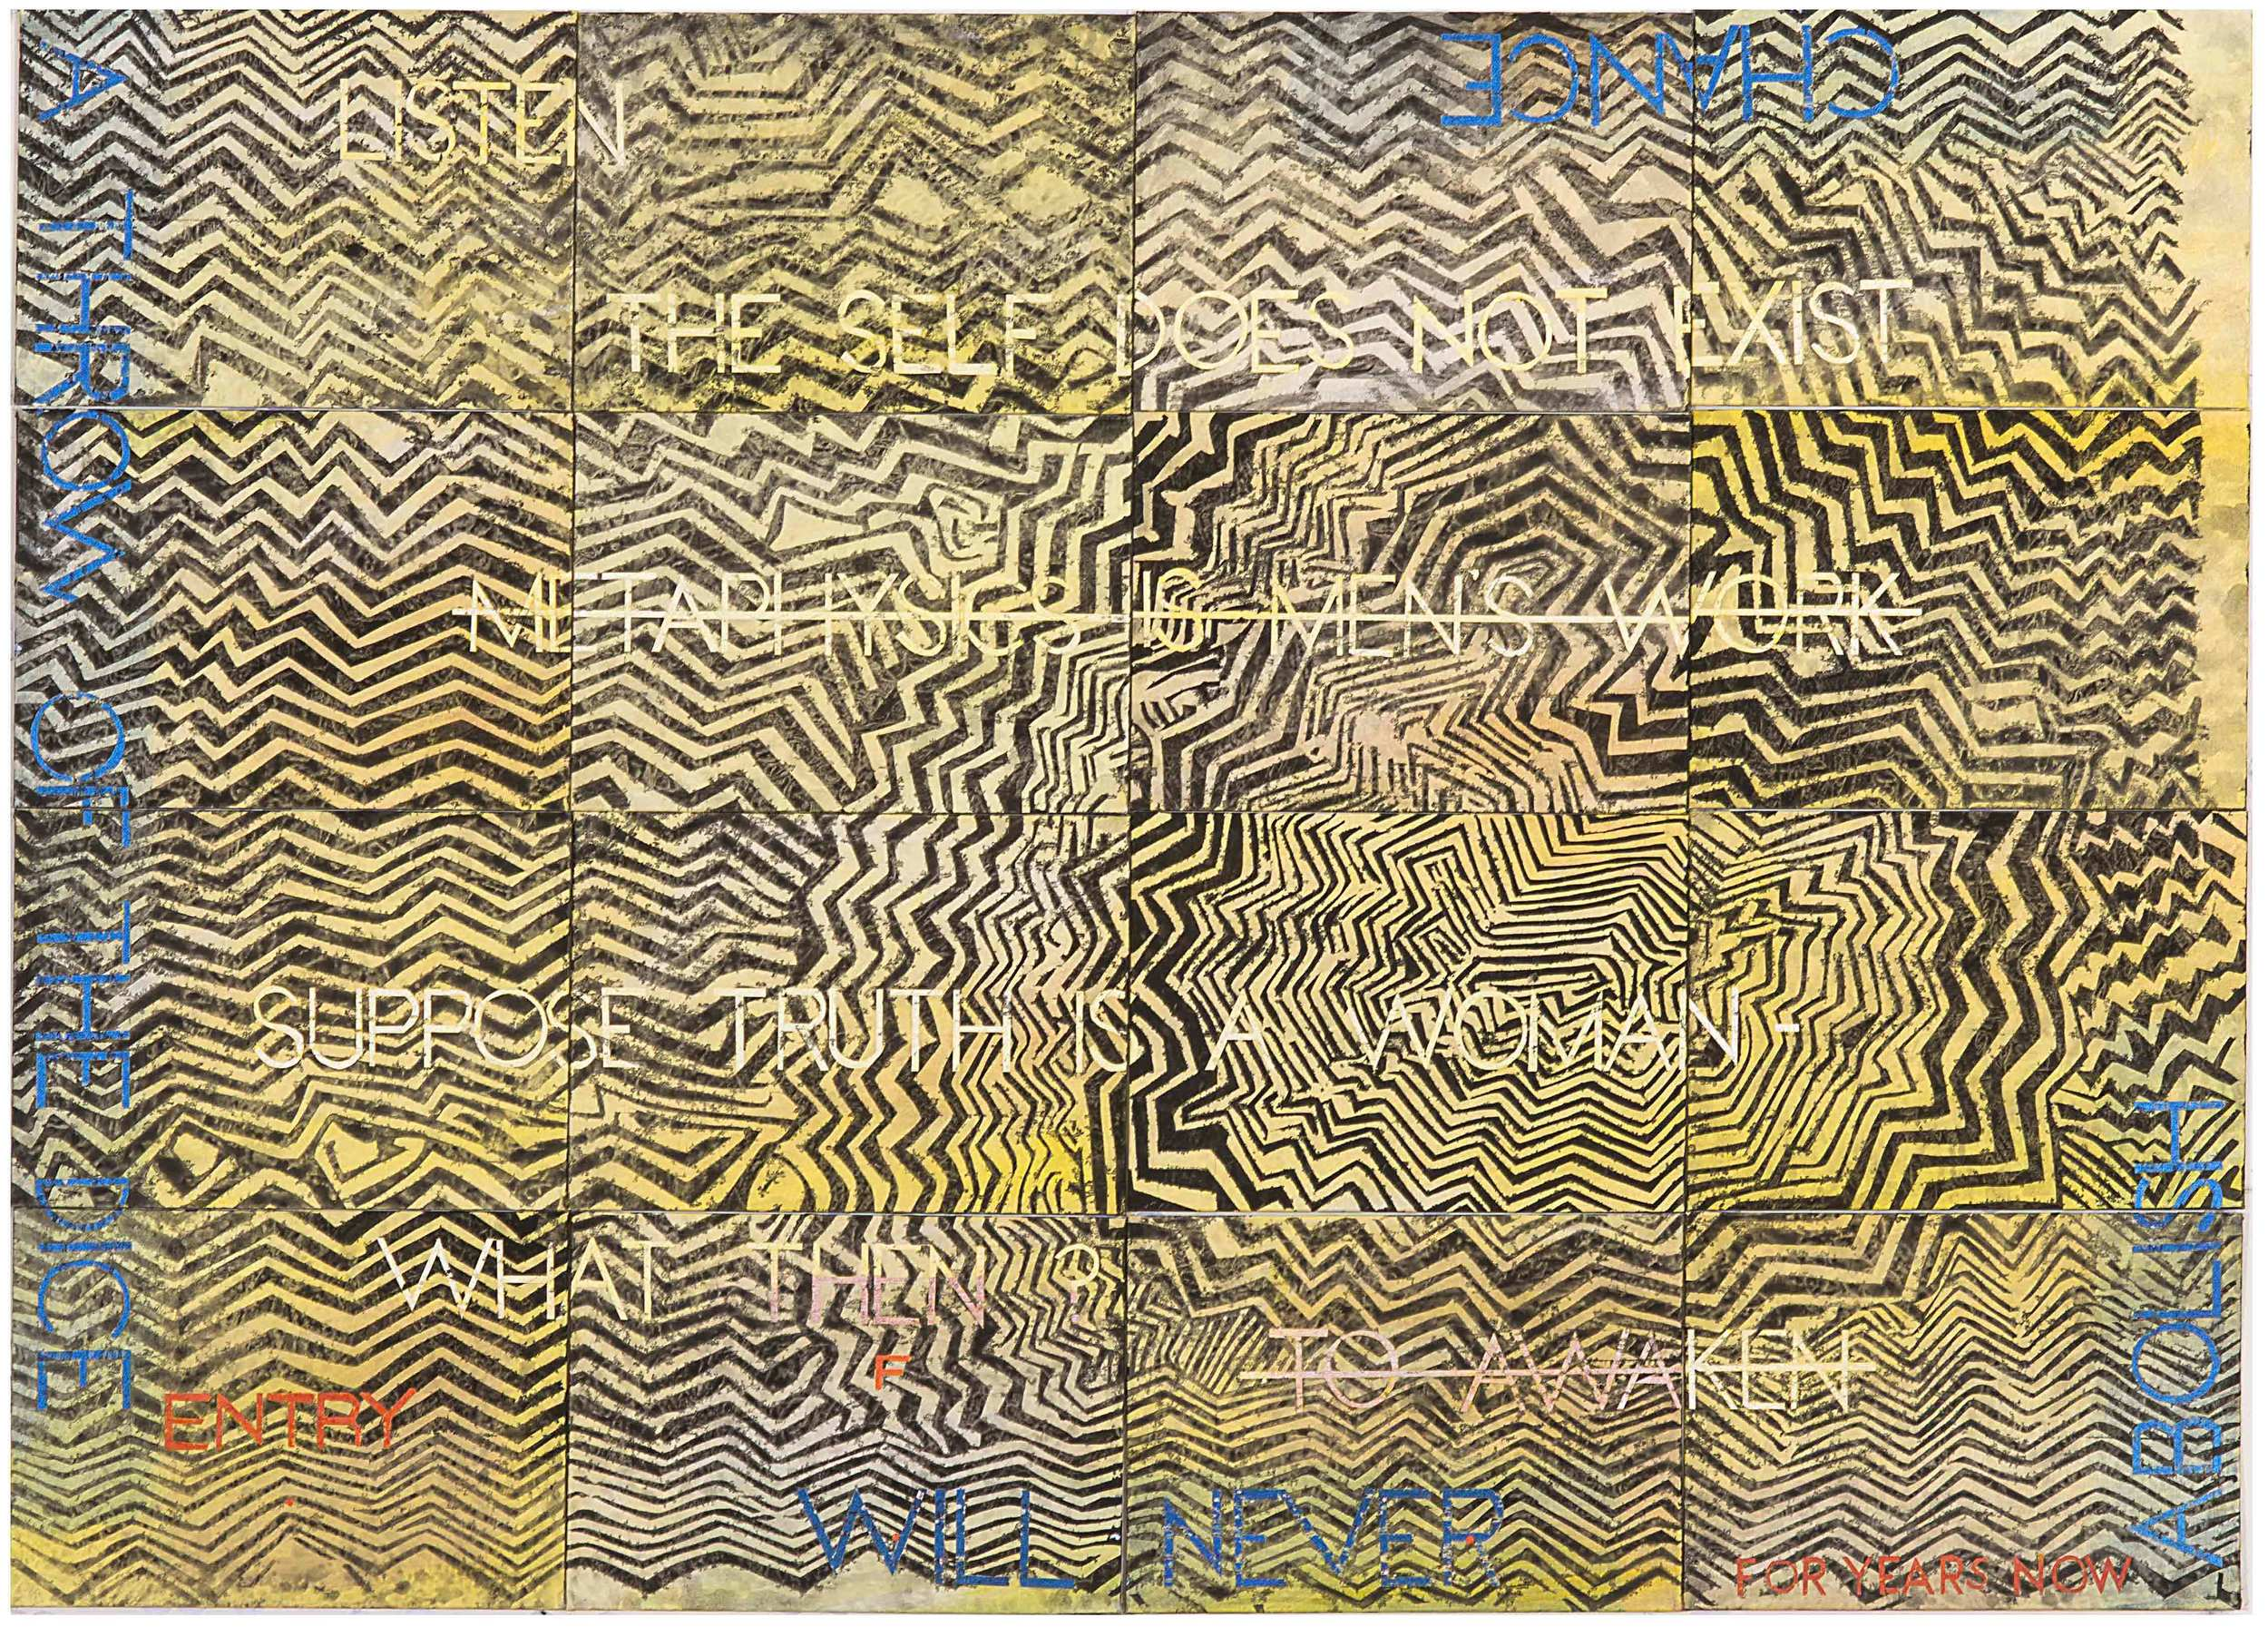 IMANTS TILLERS   Nature Speaks: FQ  2016 Synthetic polymer paint, gouache on 16 canvasboards, nos. 98326 – 98341 101.6 x 142.2 cm